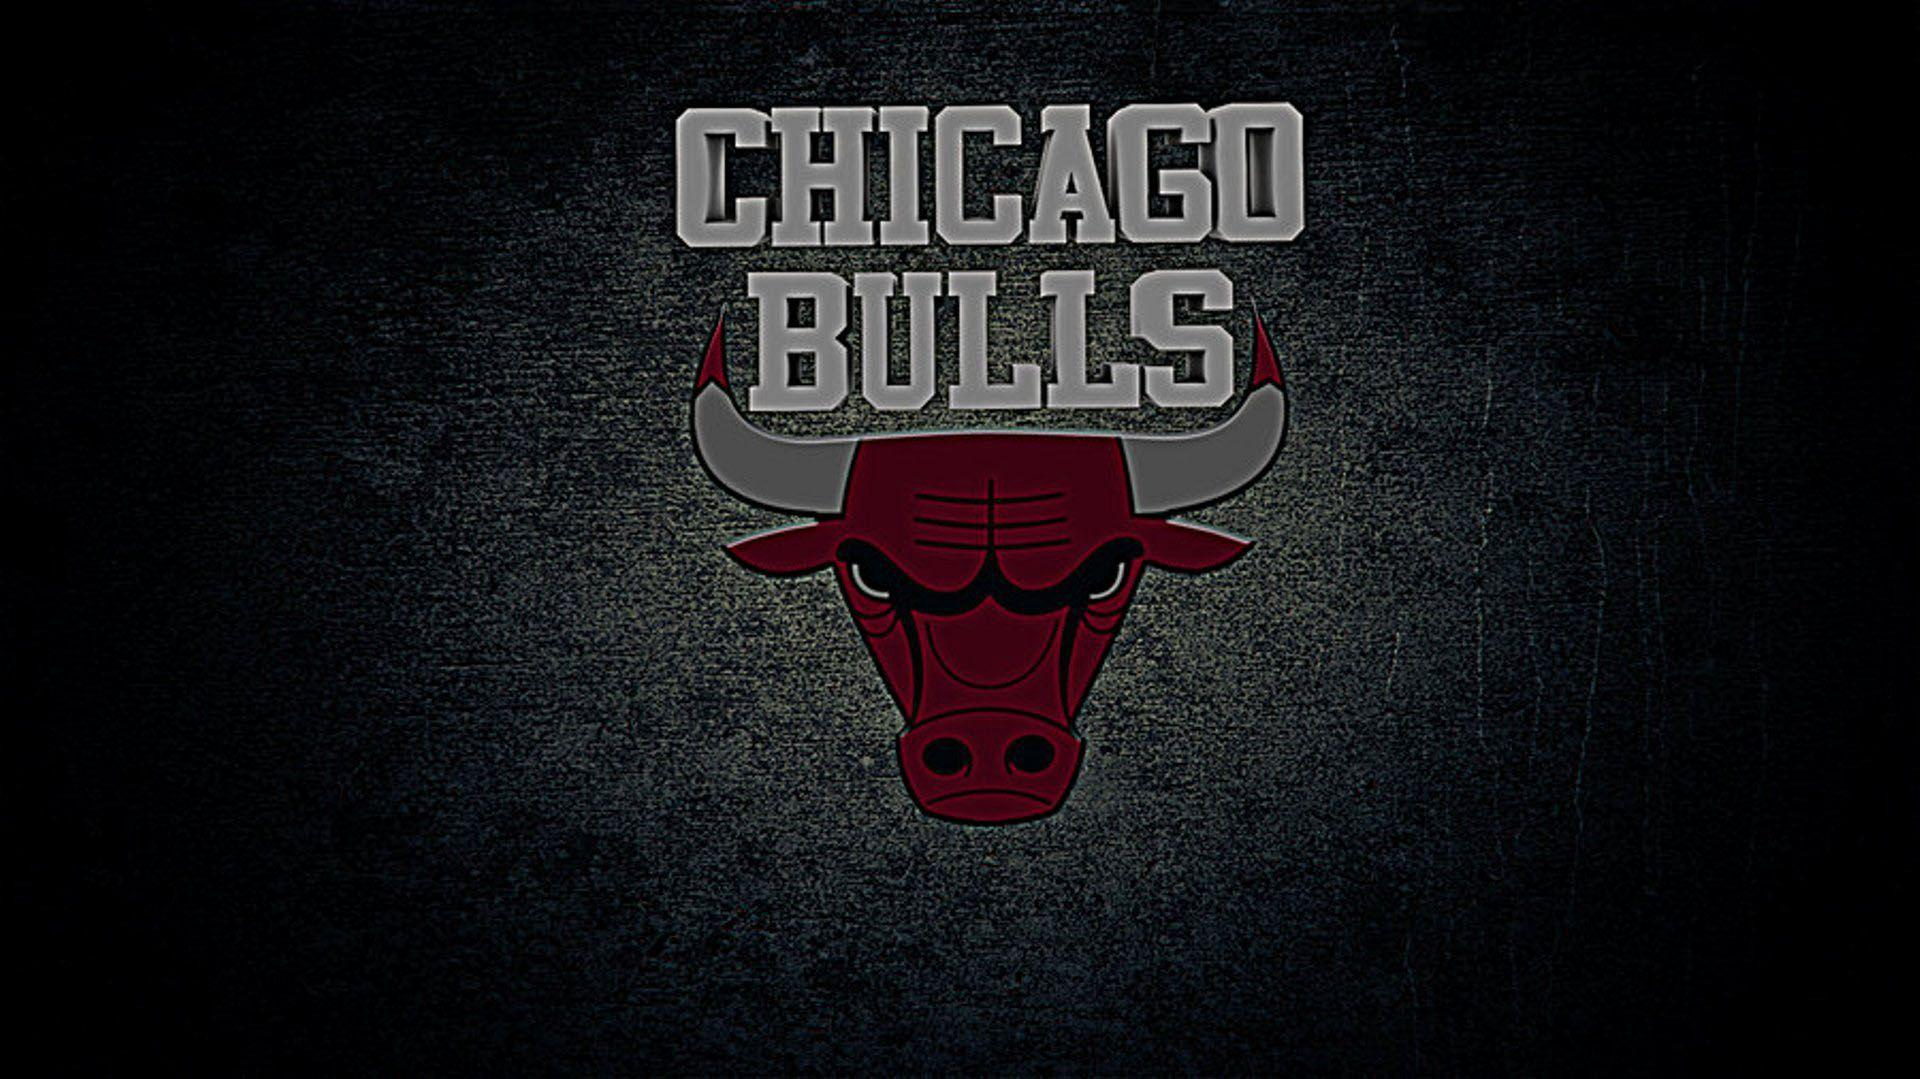 White sox Wallpapers Awesome Chicago Bulls Wallpapers Full Hd Ny3